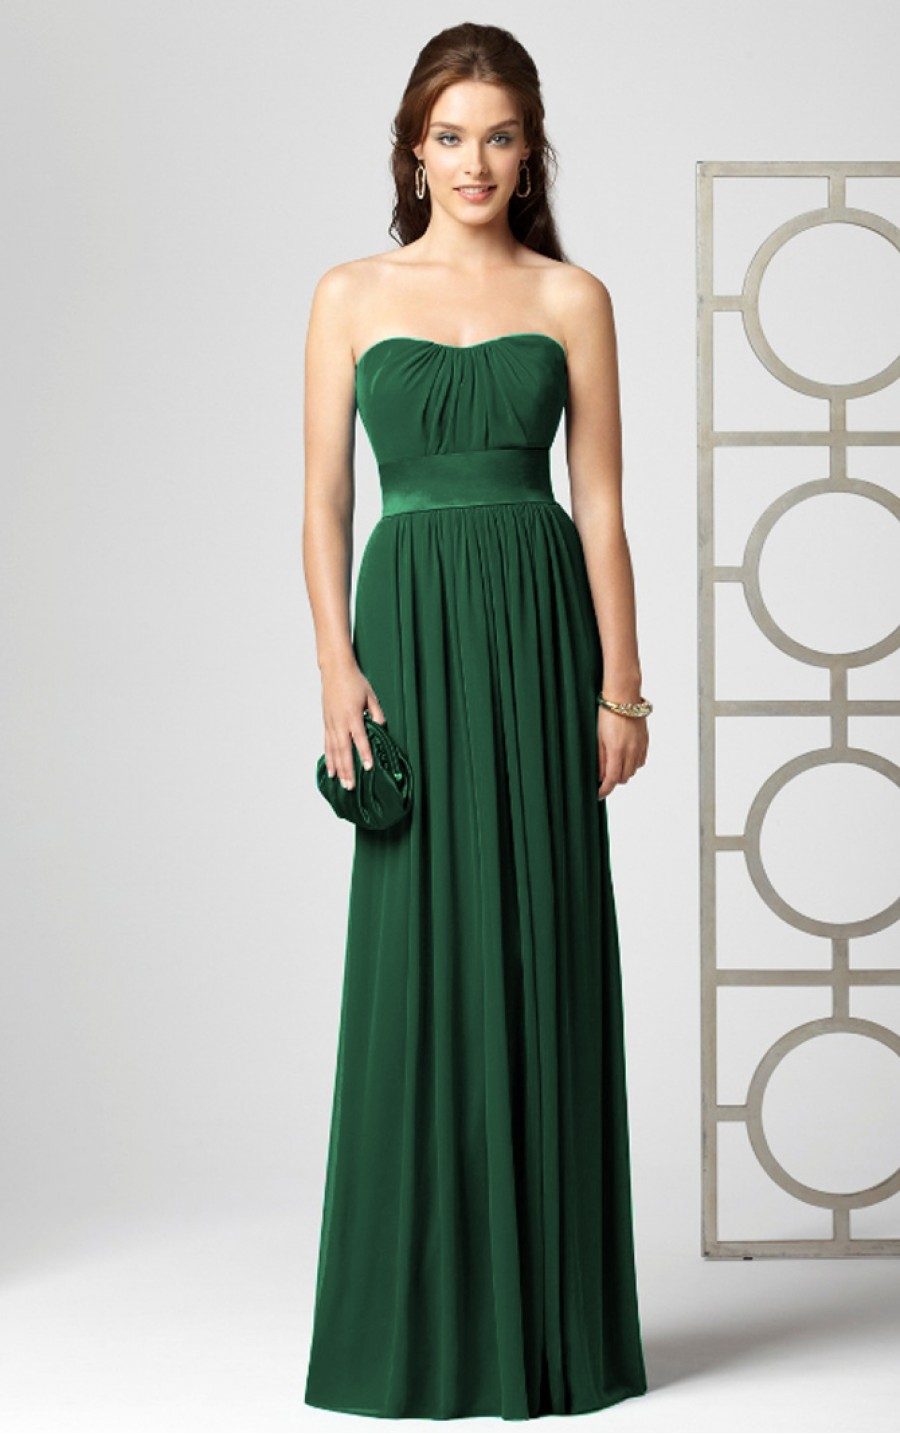 Australia Cocktail Party Dresses Holiday Wedding Party ...